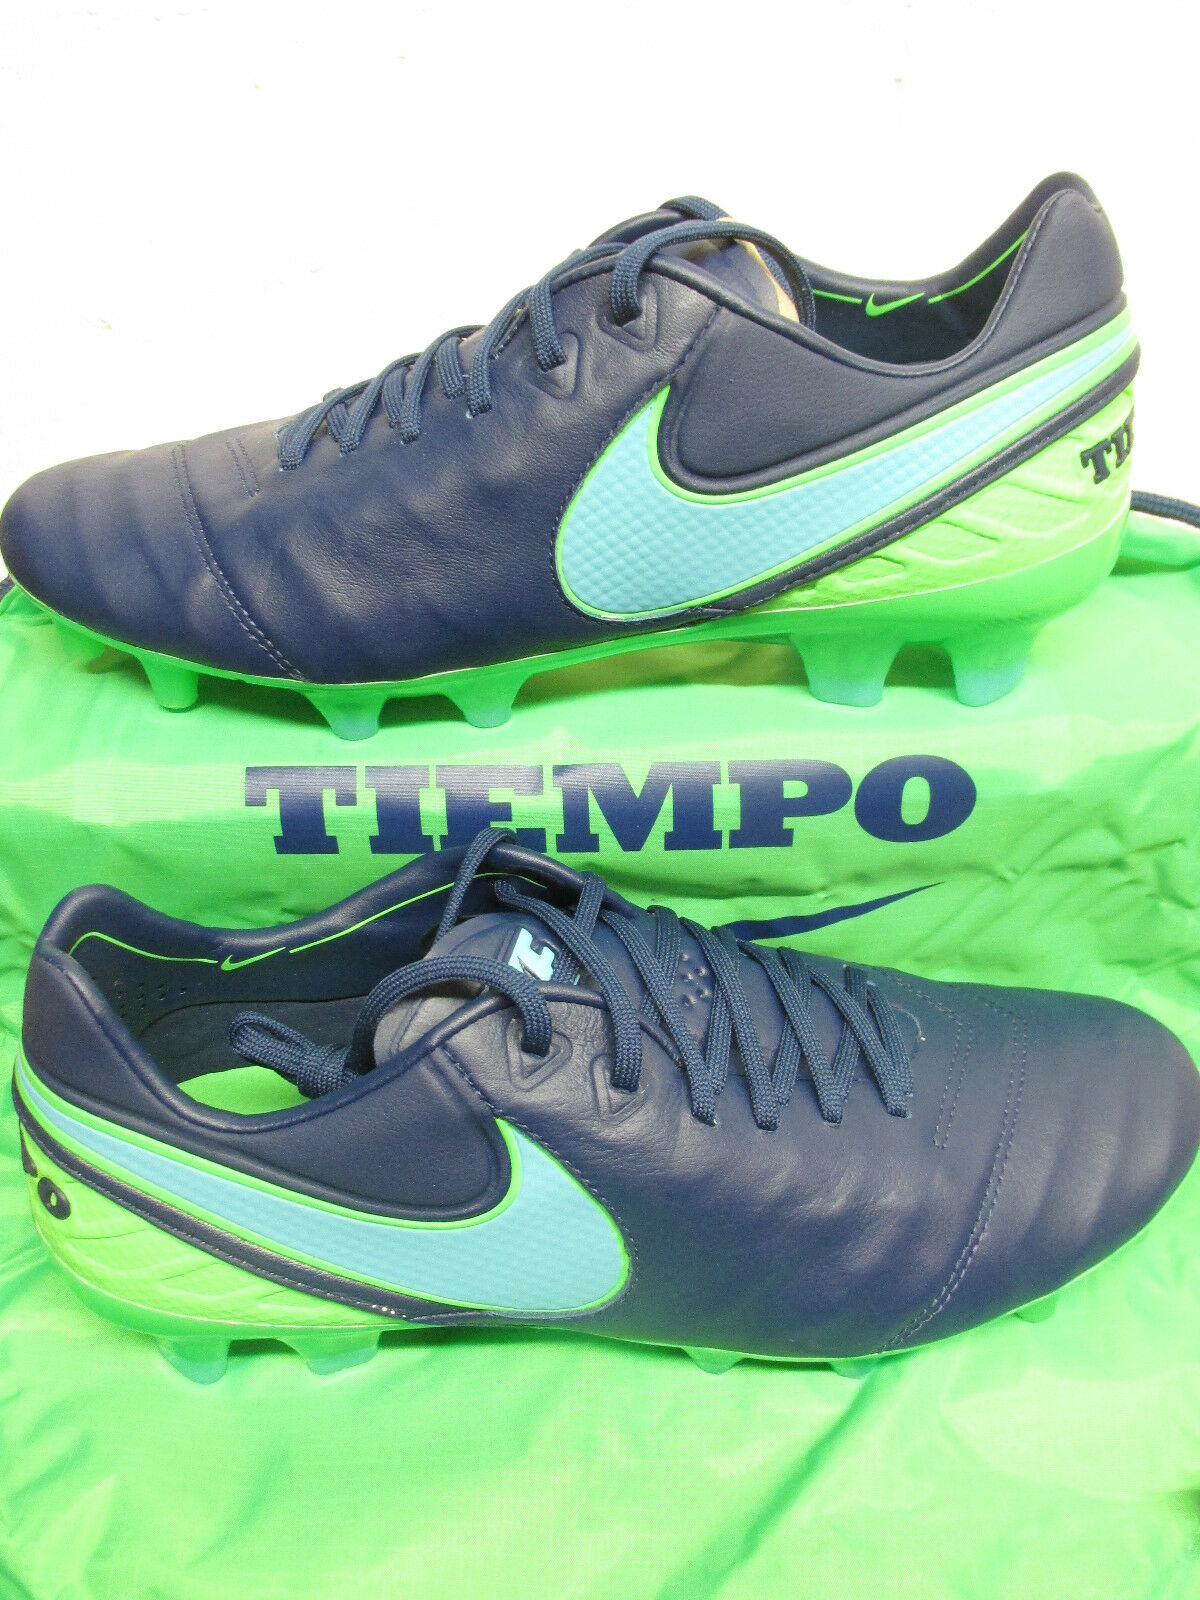 nike tiempo legend VI FG homme  football boots 819177 443 soccer cleats